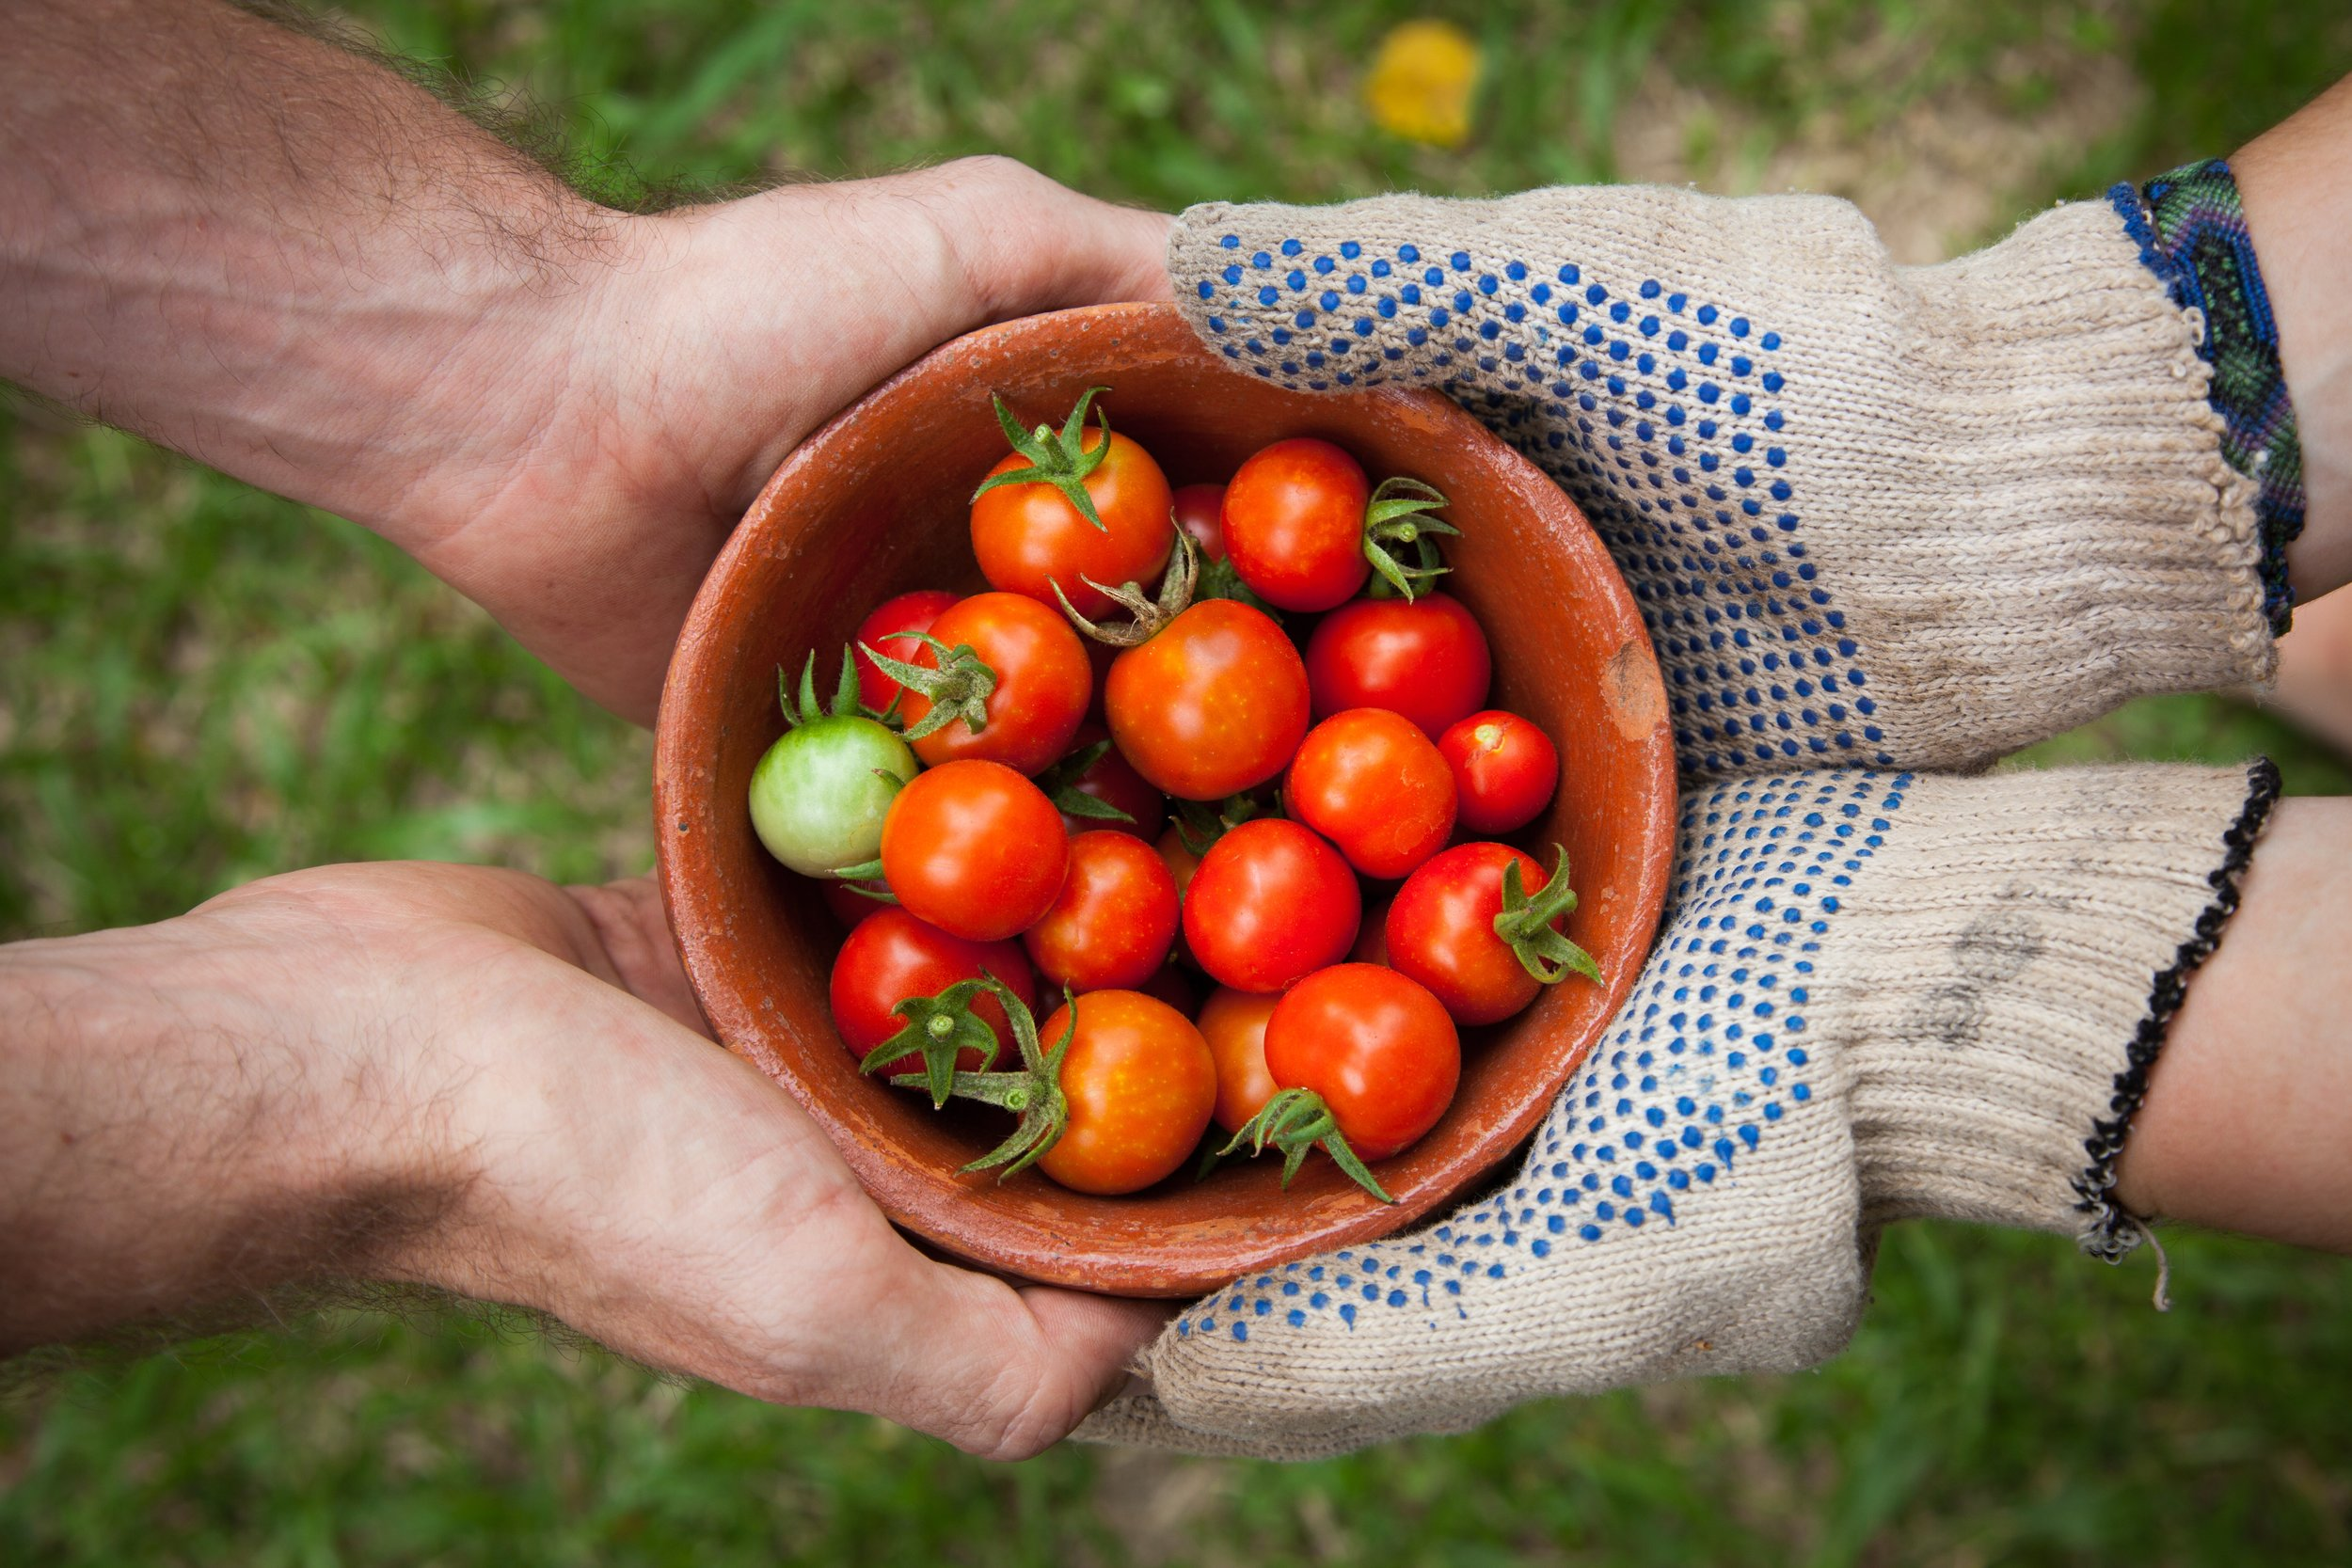 Growing your own vegetables and fruits offers many benefits such as saving money and t knowing where my food comes from. There's nothing better than eating a tomato right off the vine. With my small space vegetable gardening plan, I've been able to provide fresh food for my family and friends.